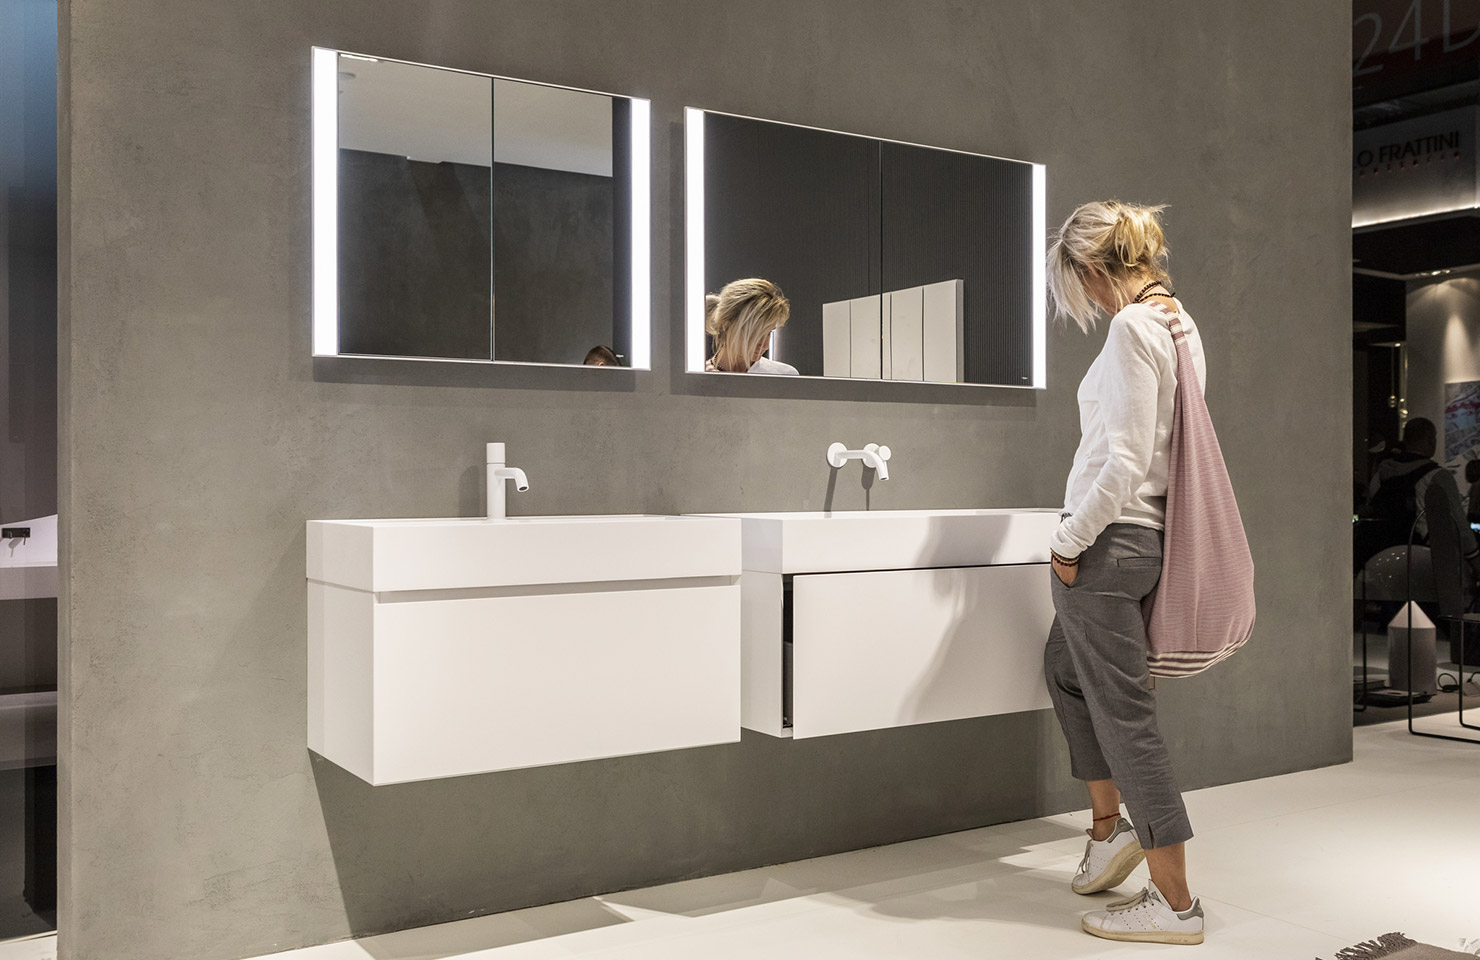 eurobagno, milan, International Bathroom Exhibition 2020, maison valentina, bathroom, bathroom decoration,  international bathroom exhibition 2020 Elevating Bathroom Design –  International Bathroom Exhibition 2020 MV Eurobagno